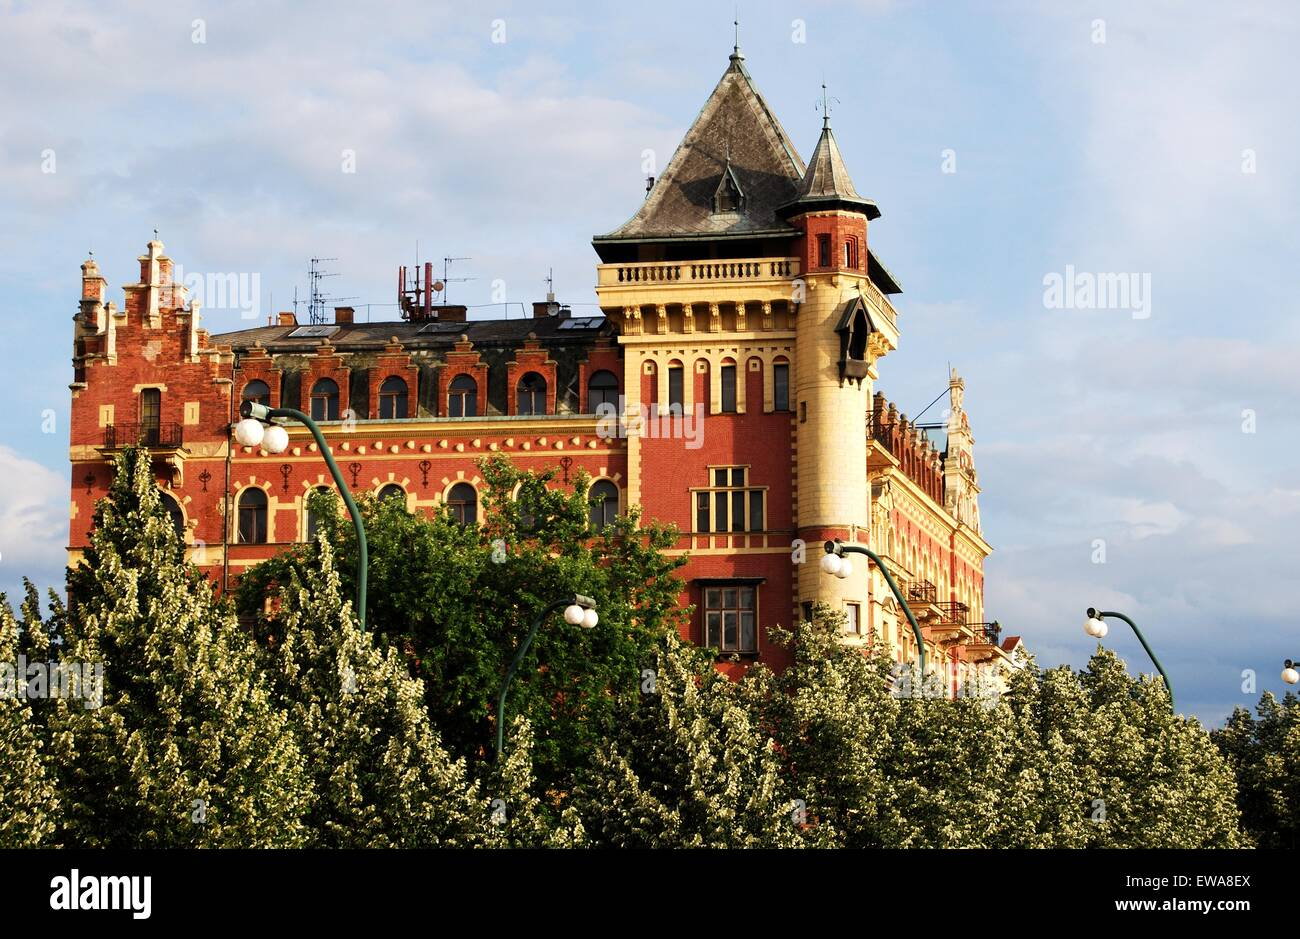 View of the Dutch Renaissance Bellevue building alongside the Smetana Quay, Prague, Czech Republic, Eastern Europe. - Stock Image